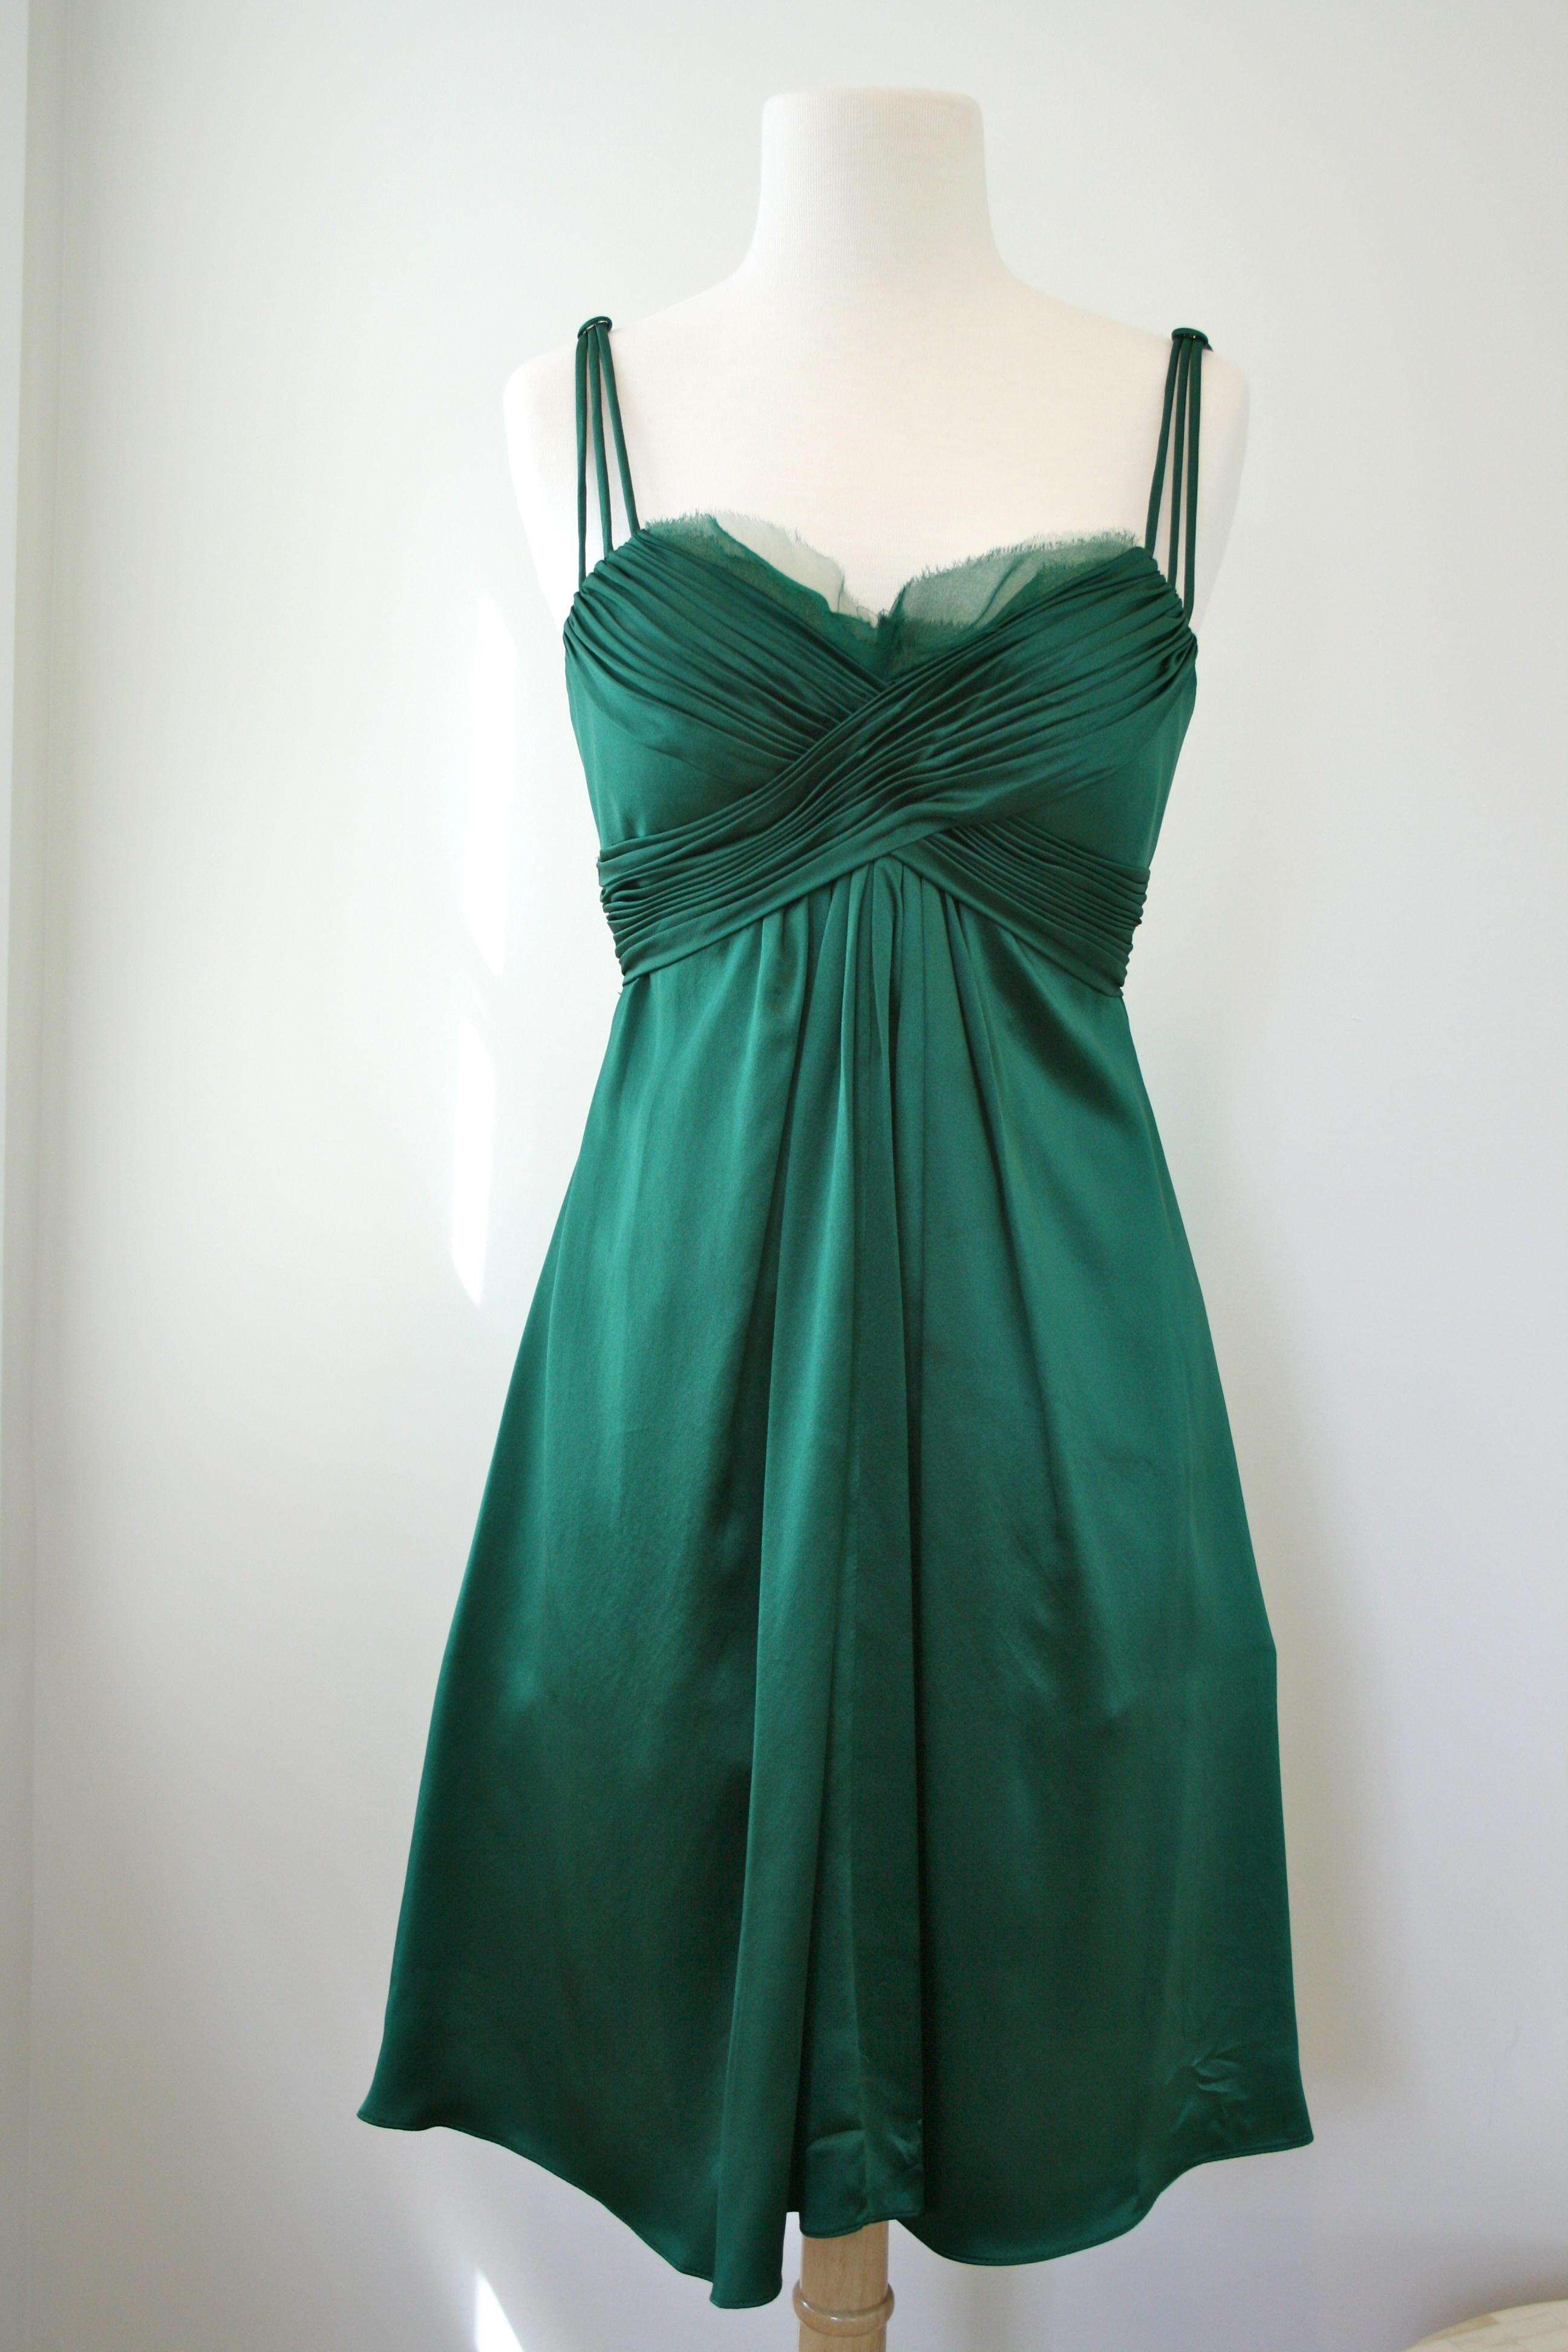 emerald green cocktail dresses Shop for emerald green